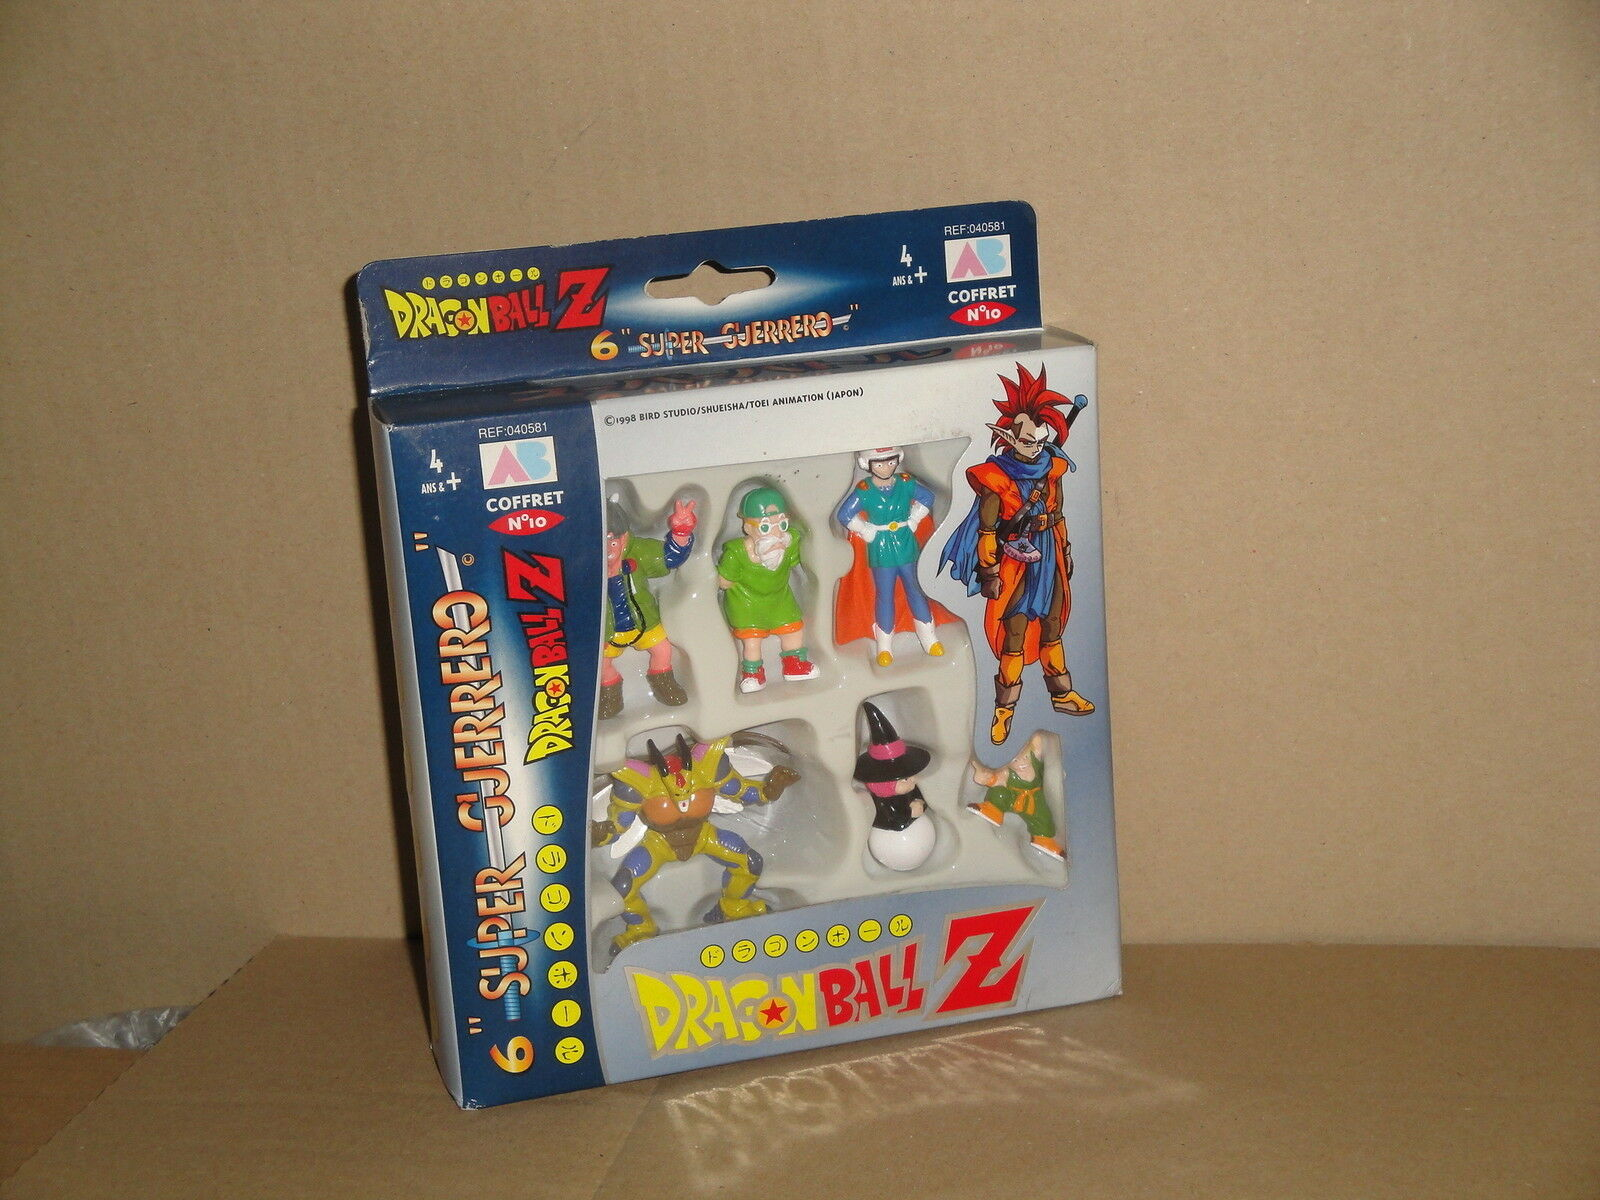 DRAGON BALL Z SUPER GUERERO BY AB TOYS COFFRET   10 WHEN SIX FIGURES NEW IN BOX